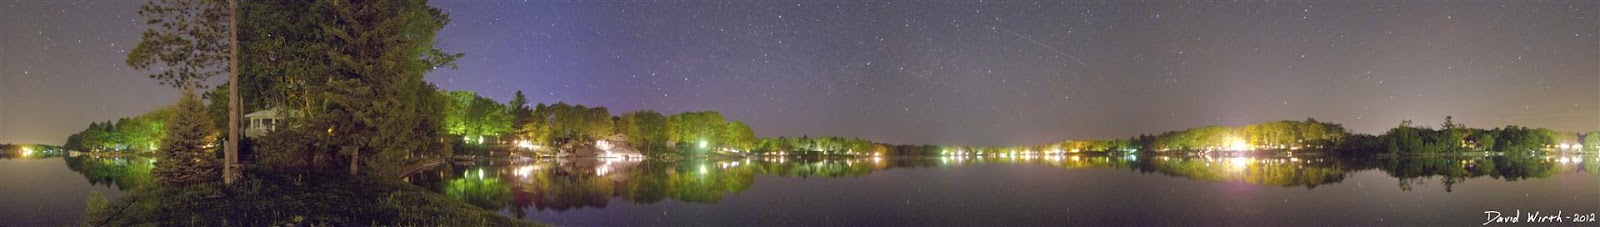 star lake panorama, reflection at night